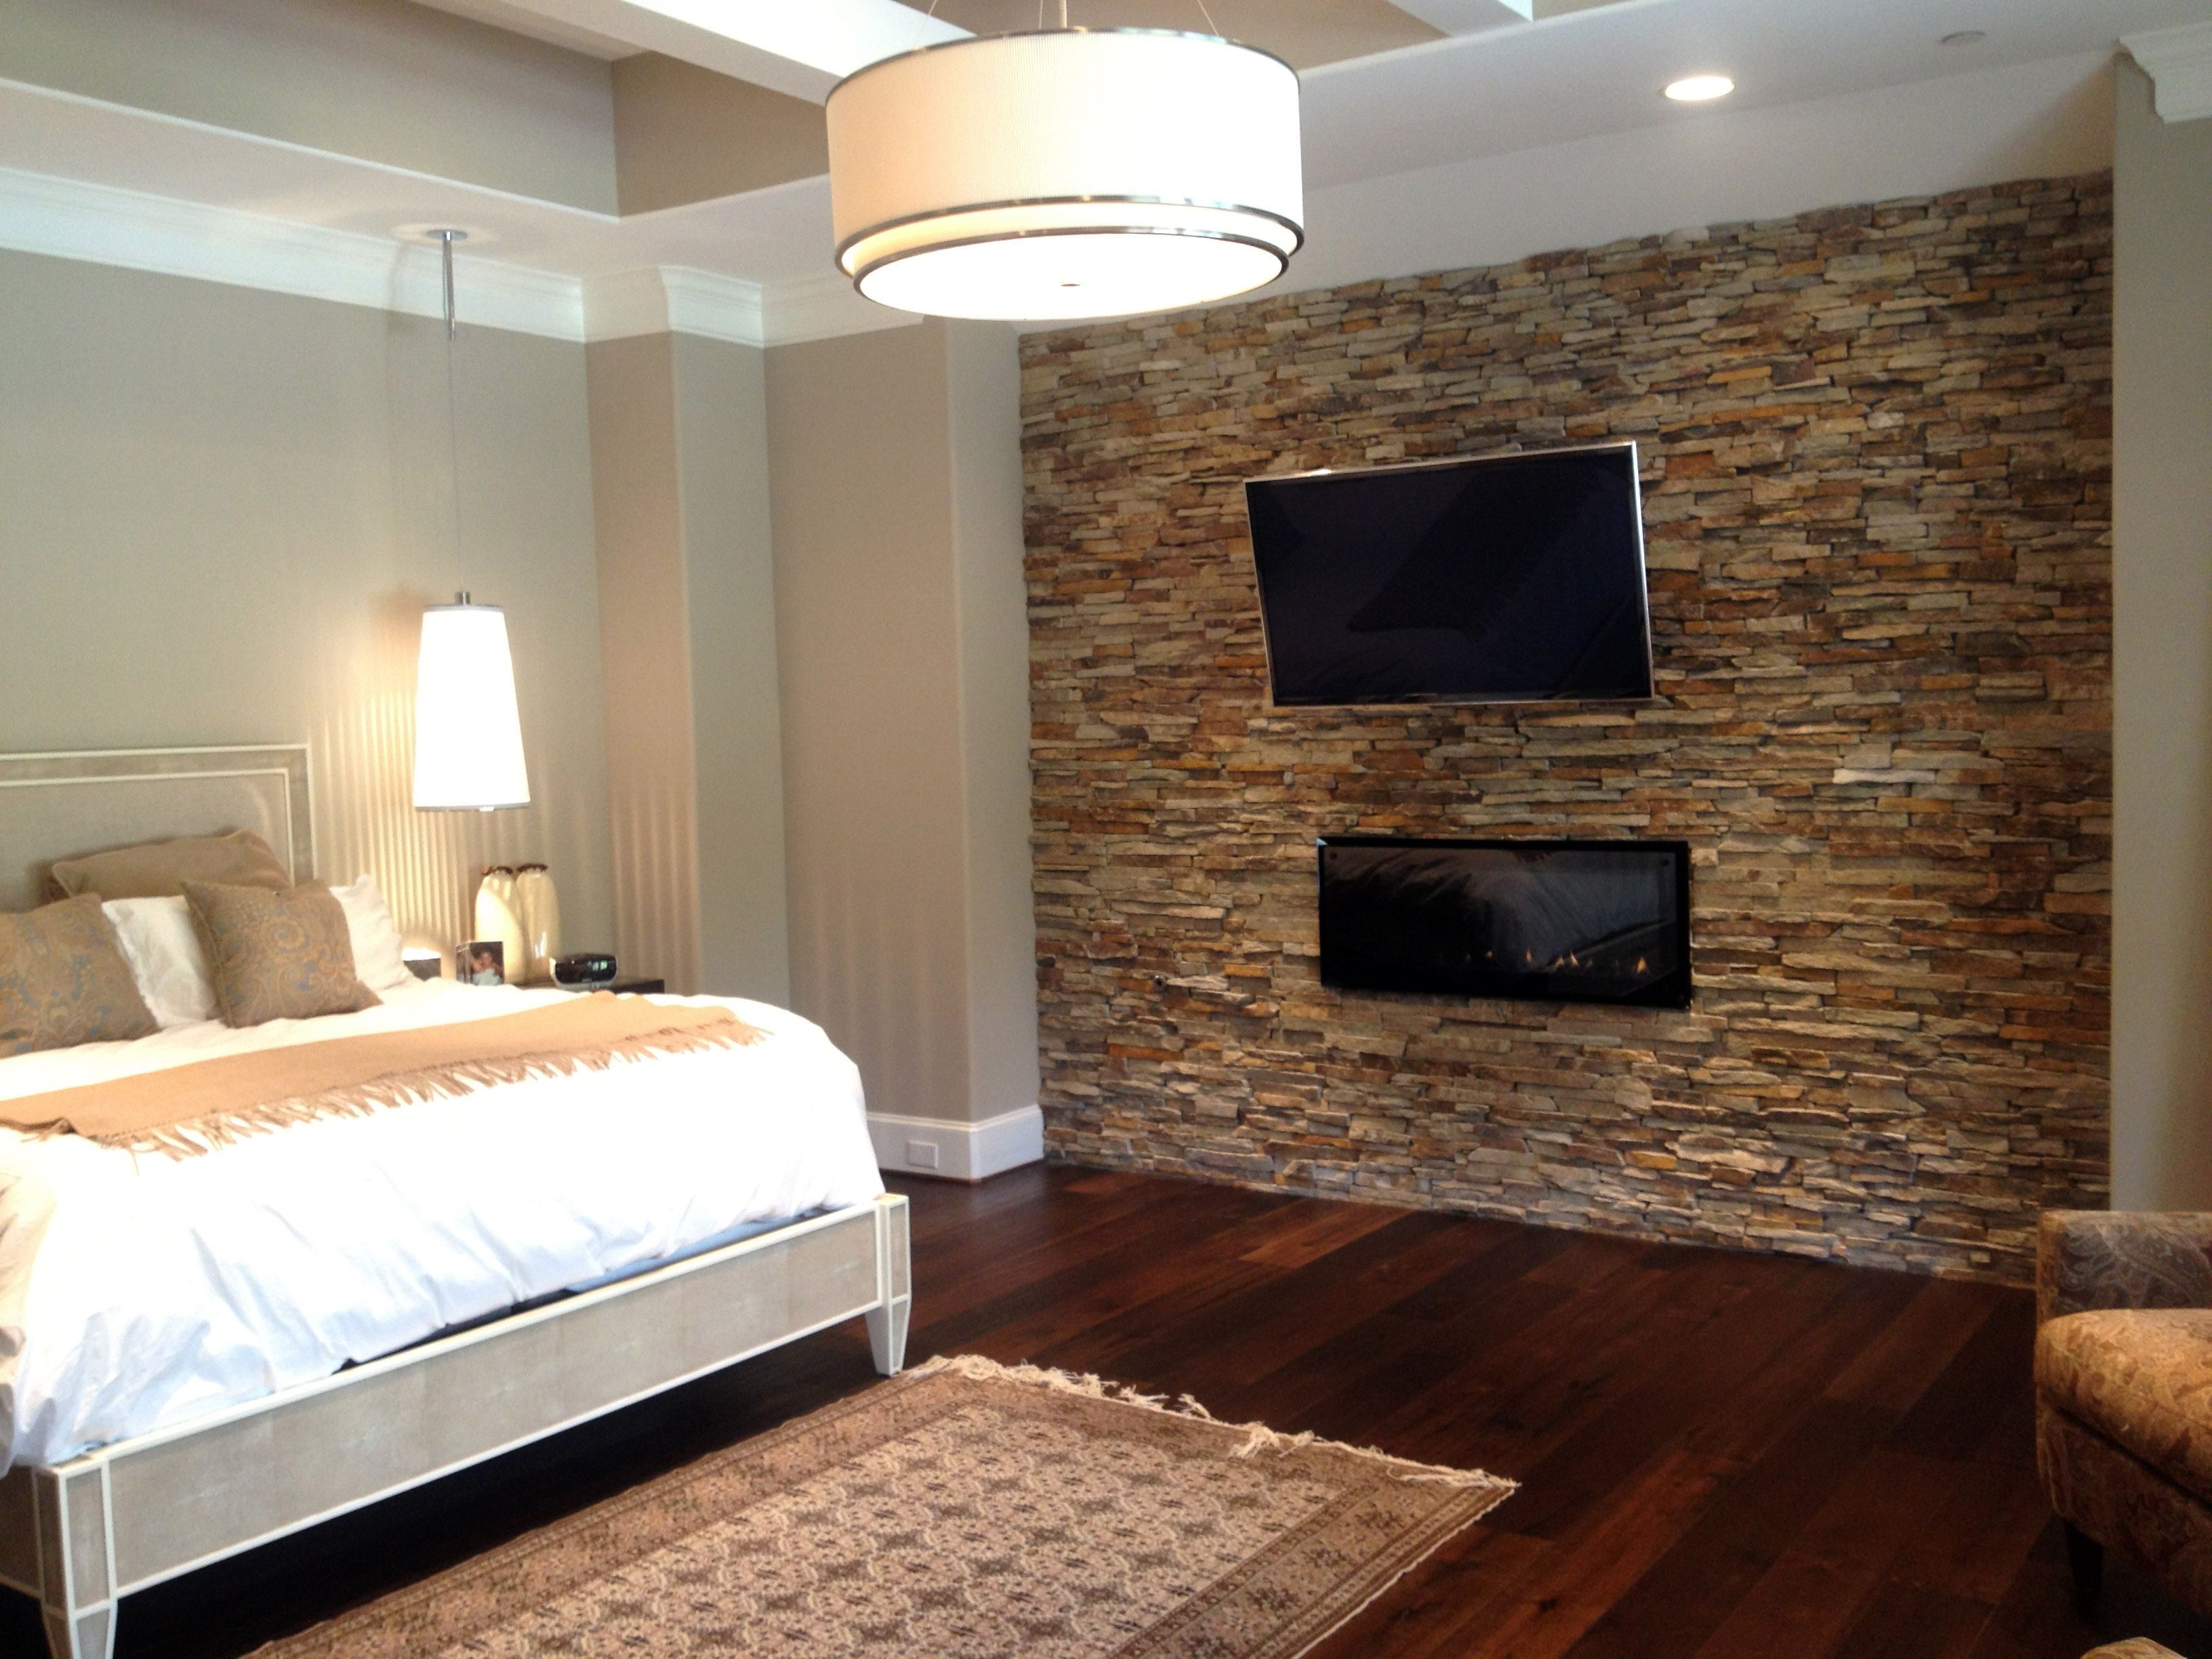 Bedroom Design: Accent Wall Ideas For Living Room Wood Accent Wall Inside Current Wallpaper Bedroom Wall Accents (View 11 of 15)